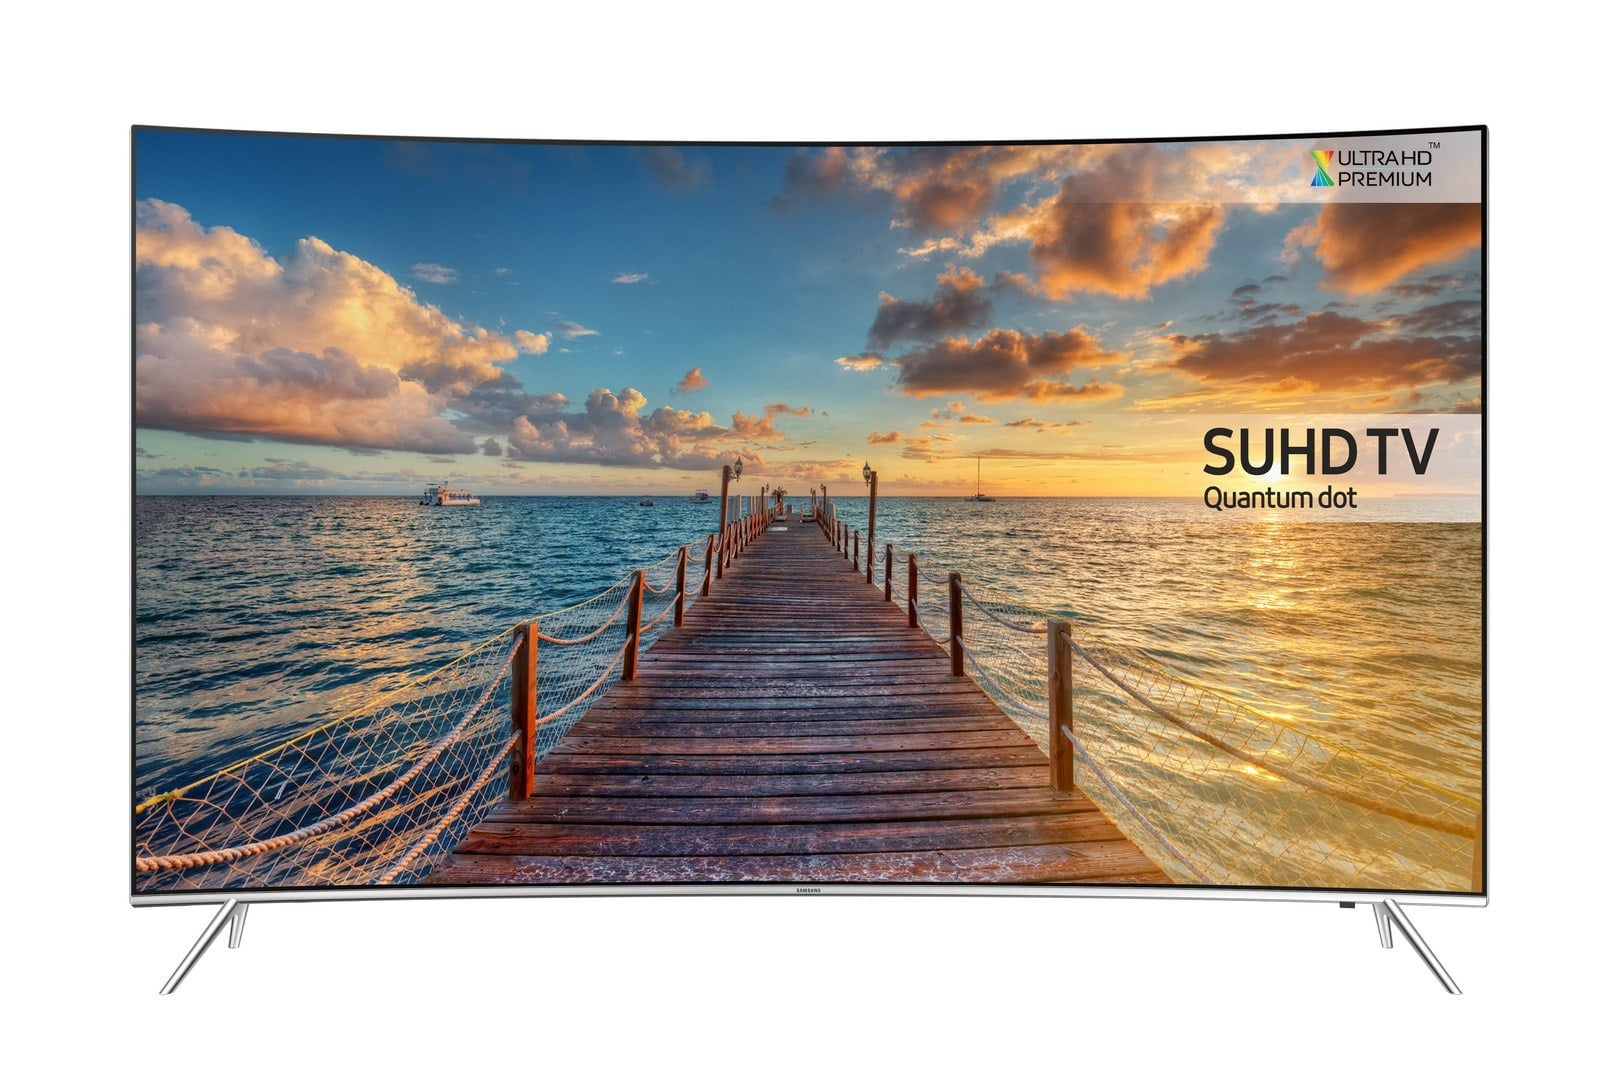 7-Series Curved Quantum Dot SUHD TV UE65KS7500